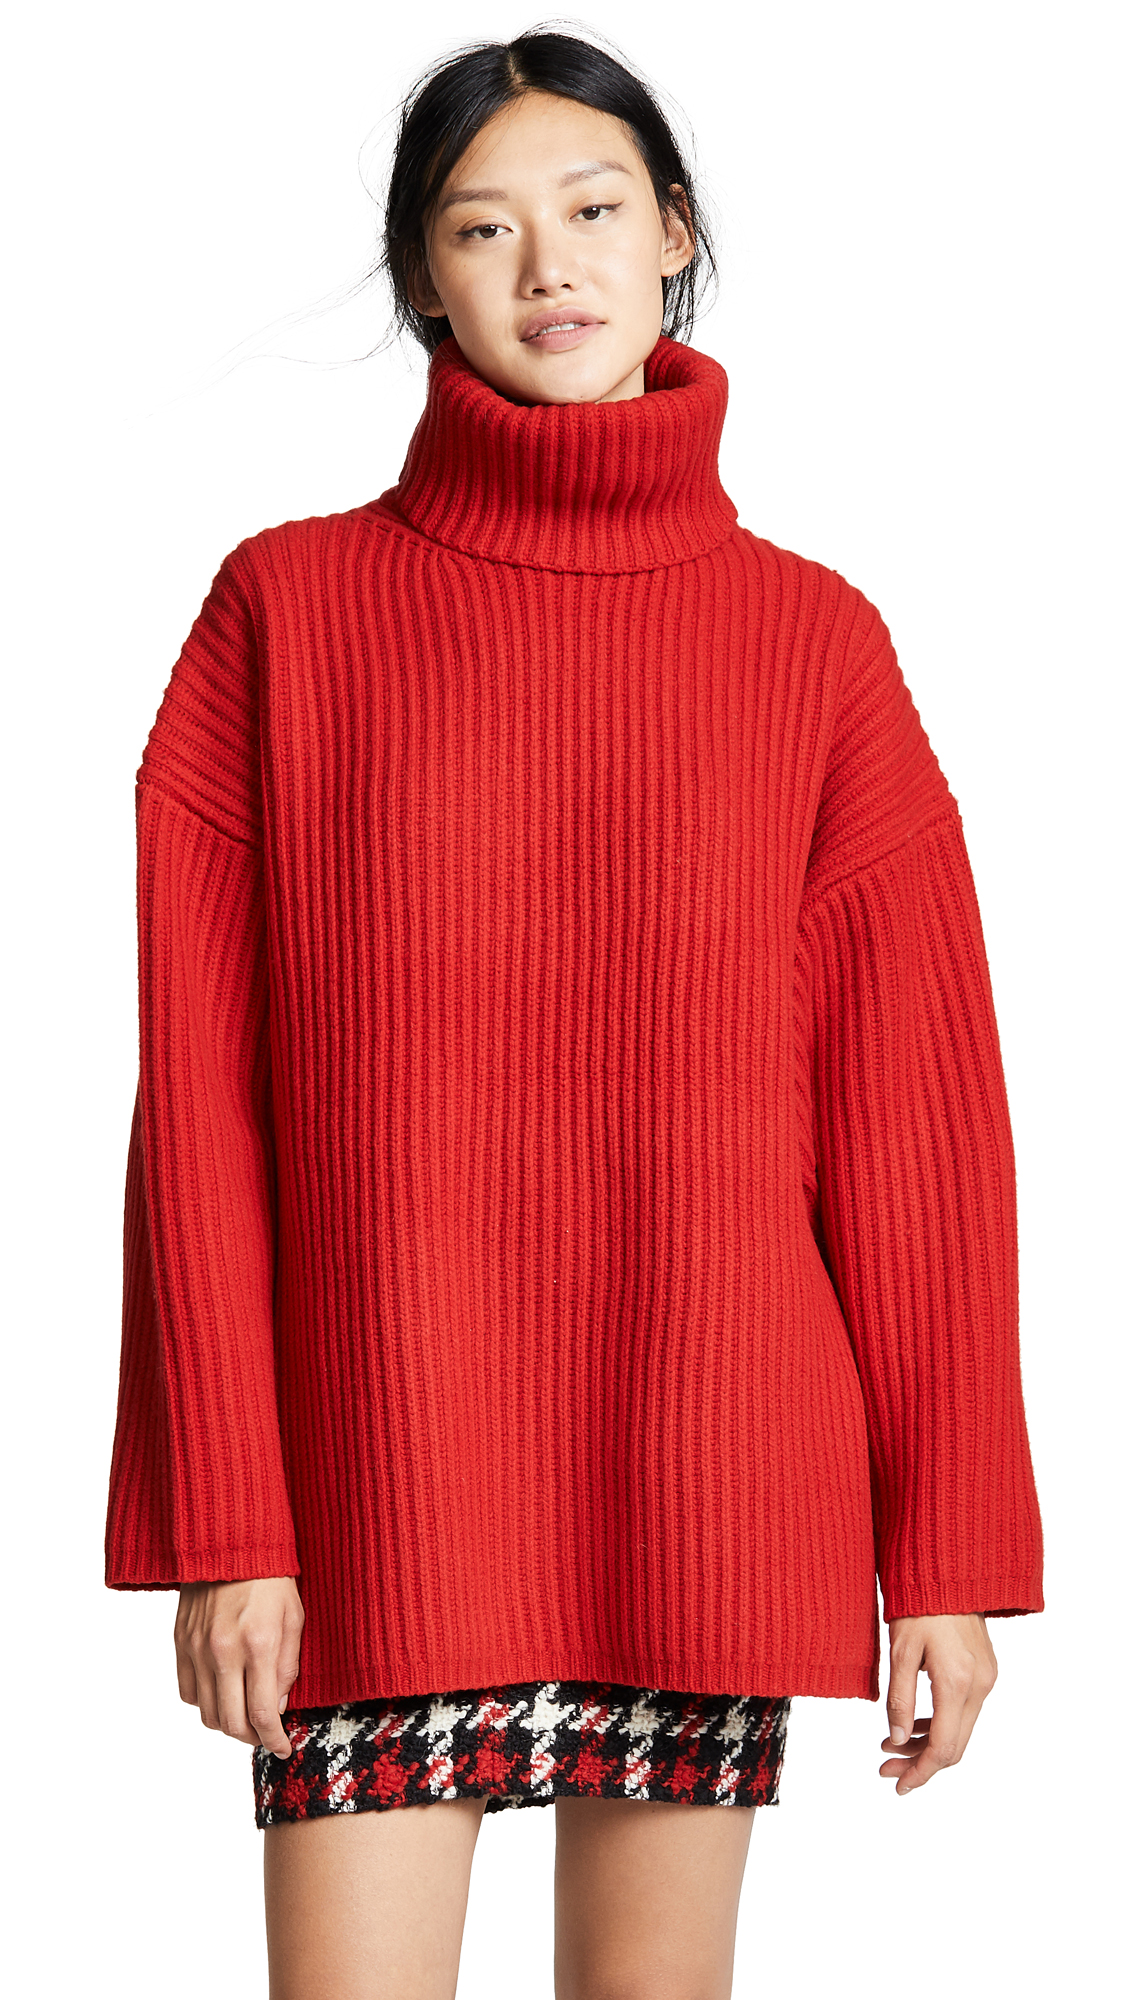 Acne Studios Oversized Turtleneck Sweater - Red